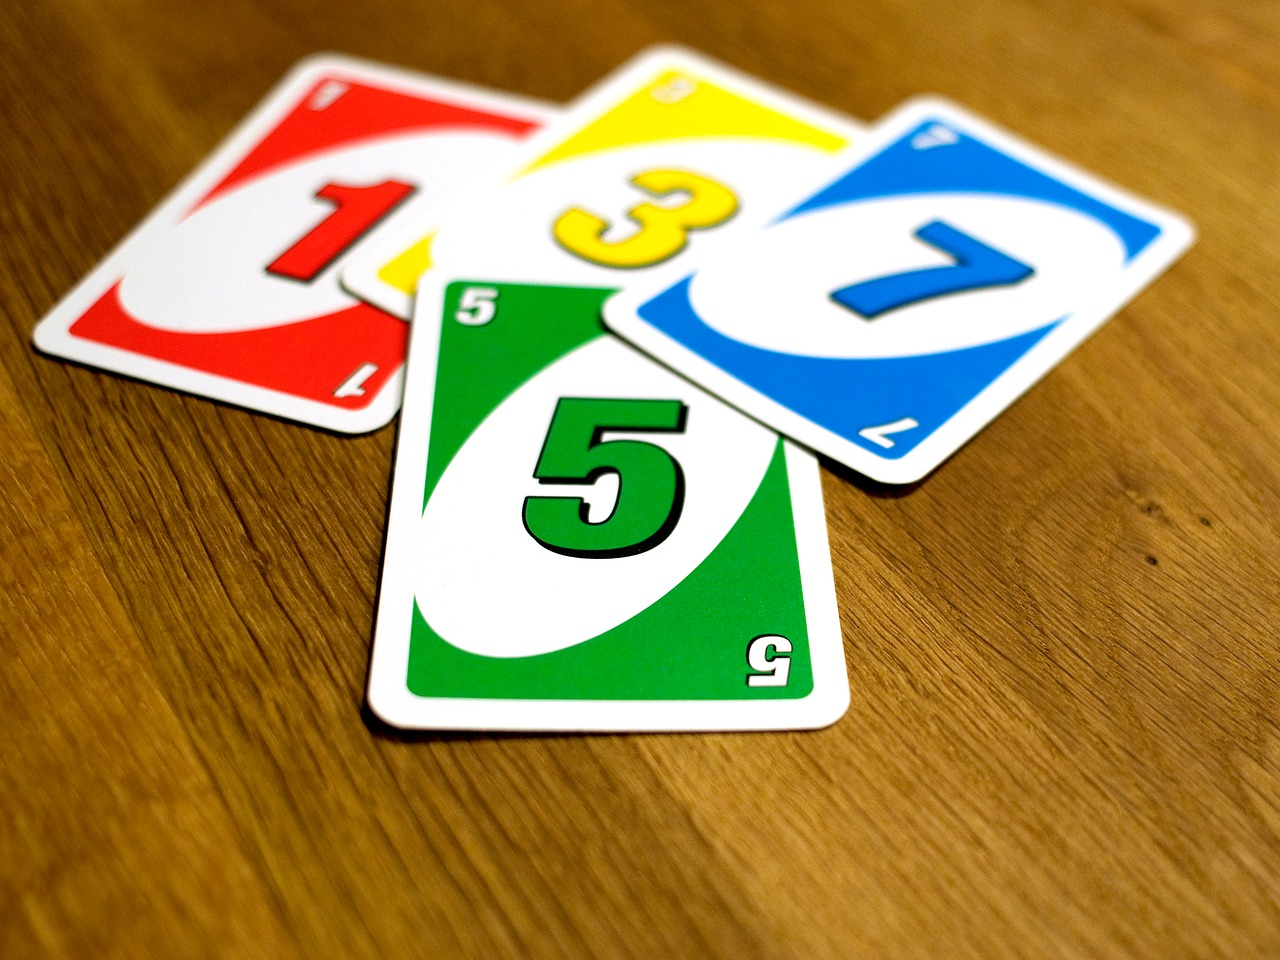 Uno one of the 5 games to carry while travelling with children